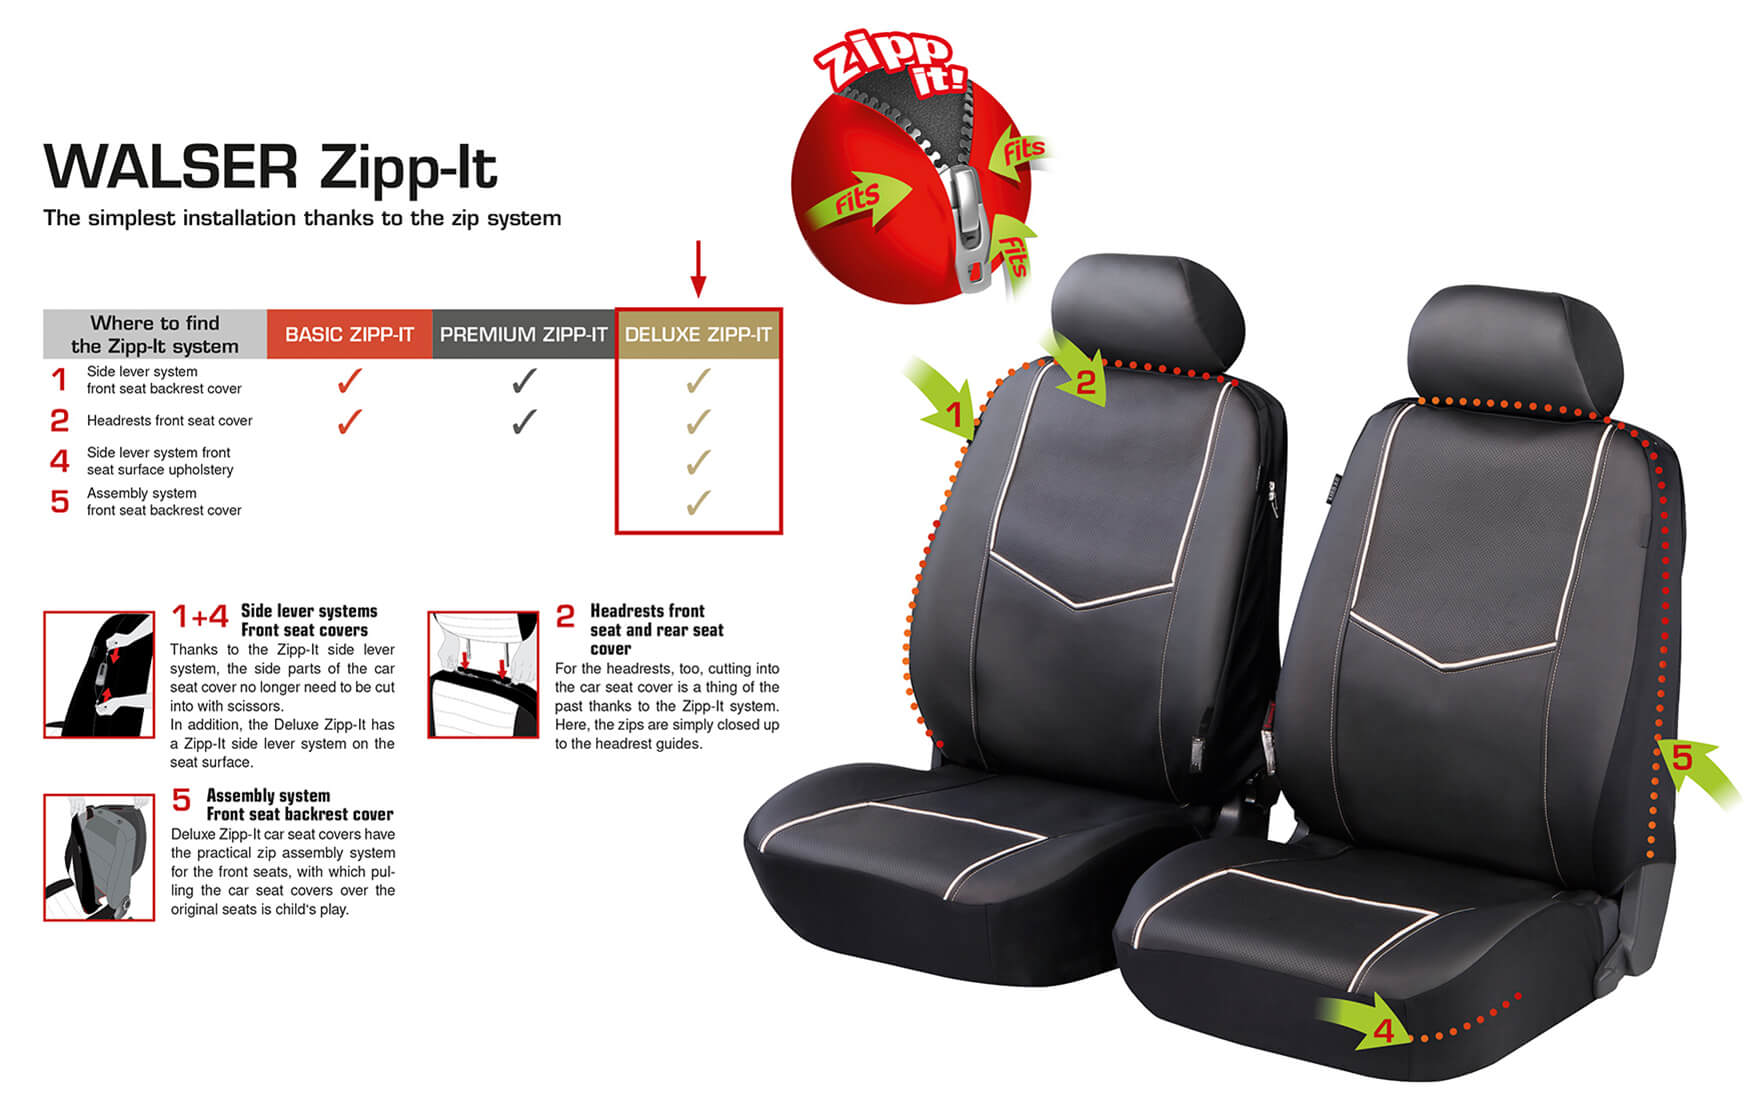 zipp it deluxe front car seat covers york made of artificial leather leatherette car seat. Black Bedroom Furniture Sets. Home Design Ideas